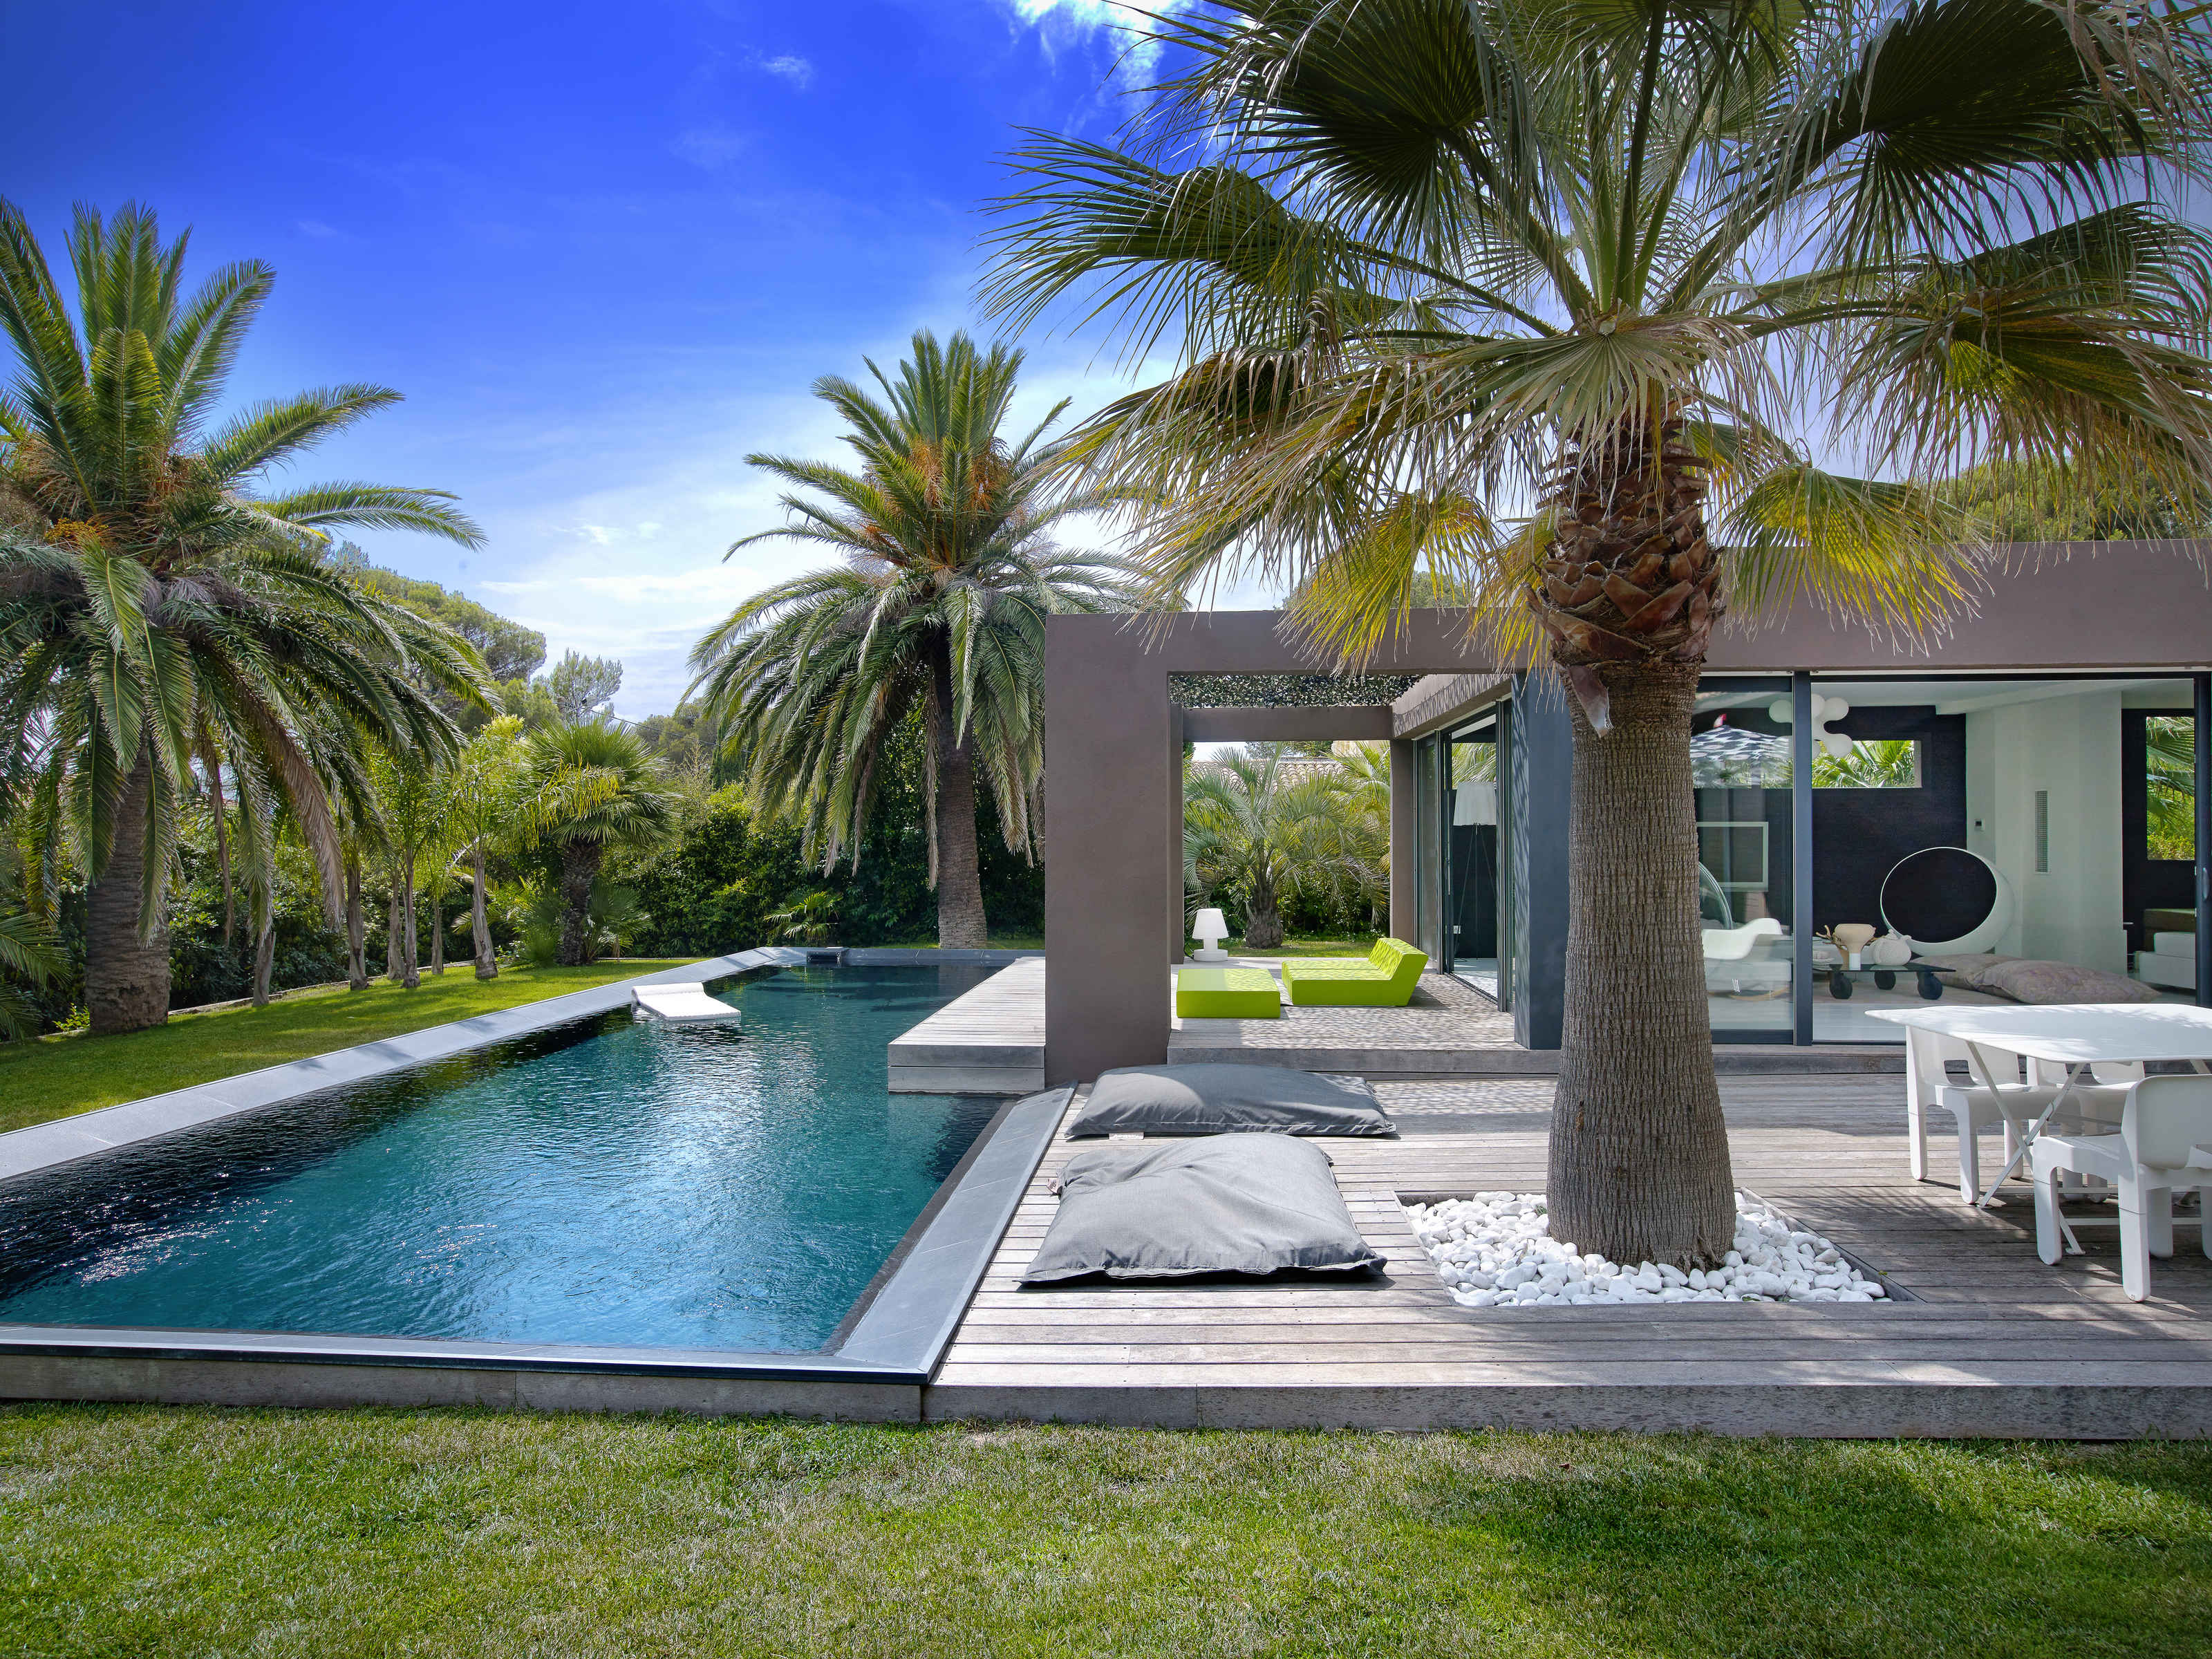 Single Family Home for Sale at Luxurious contemporary villa Other Provence-Alpes-Cote D'Azur, Provence-Alpes-Cote D'Azur 83700 France